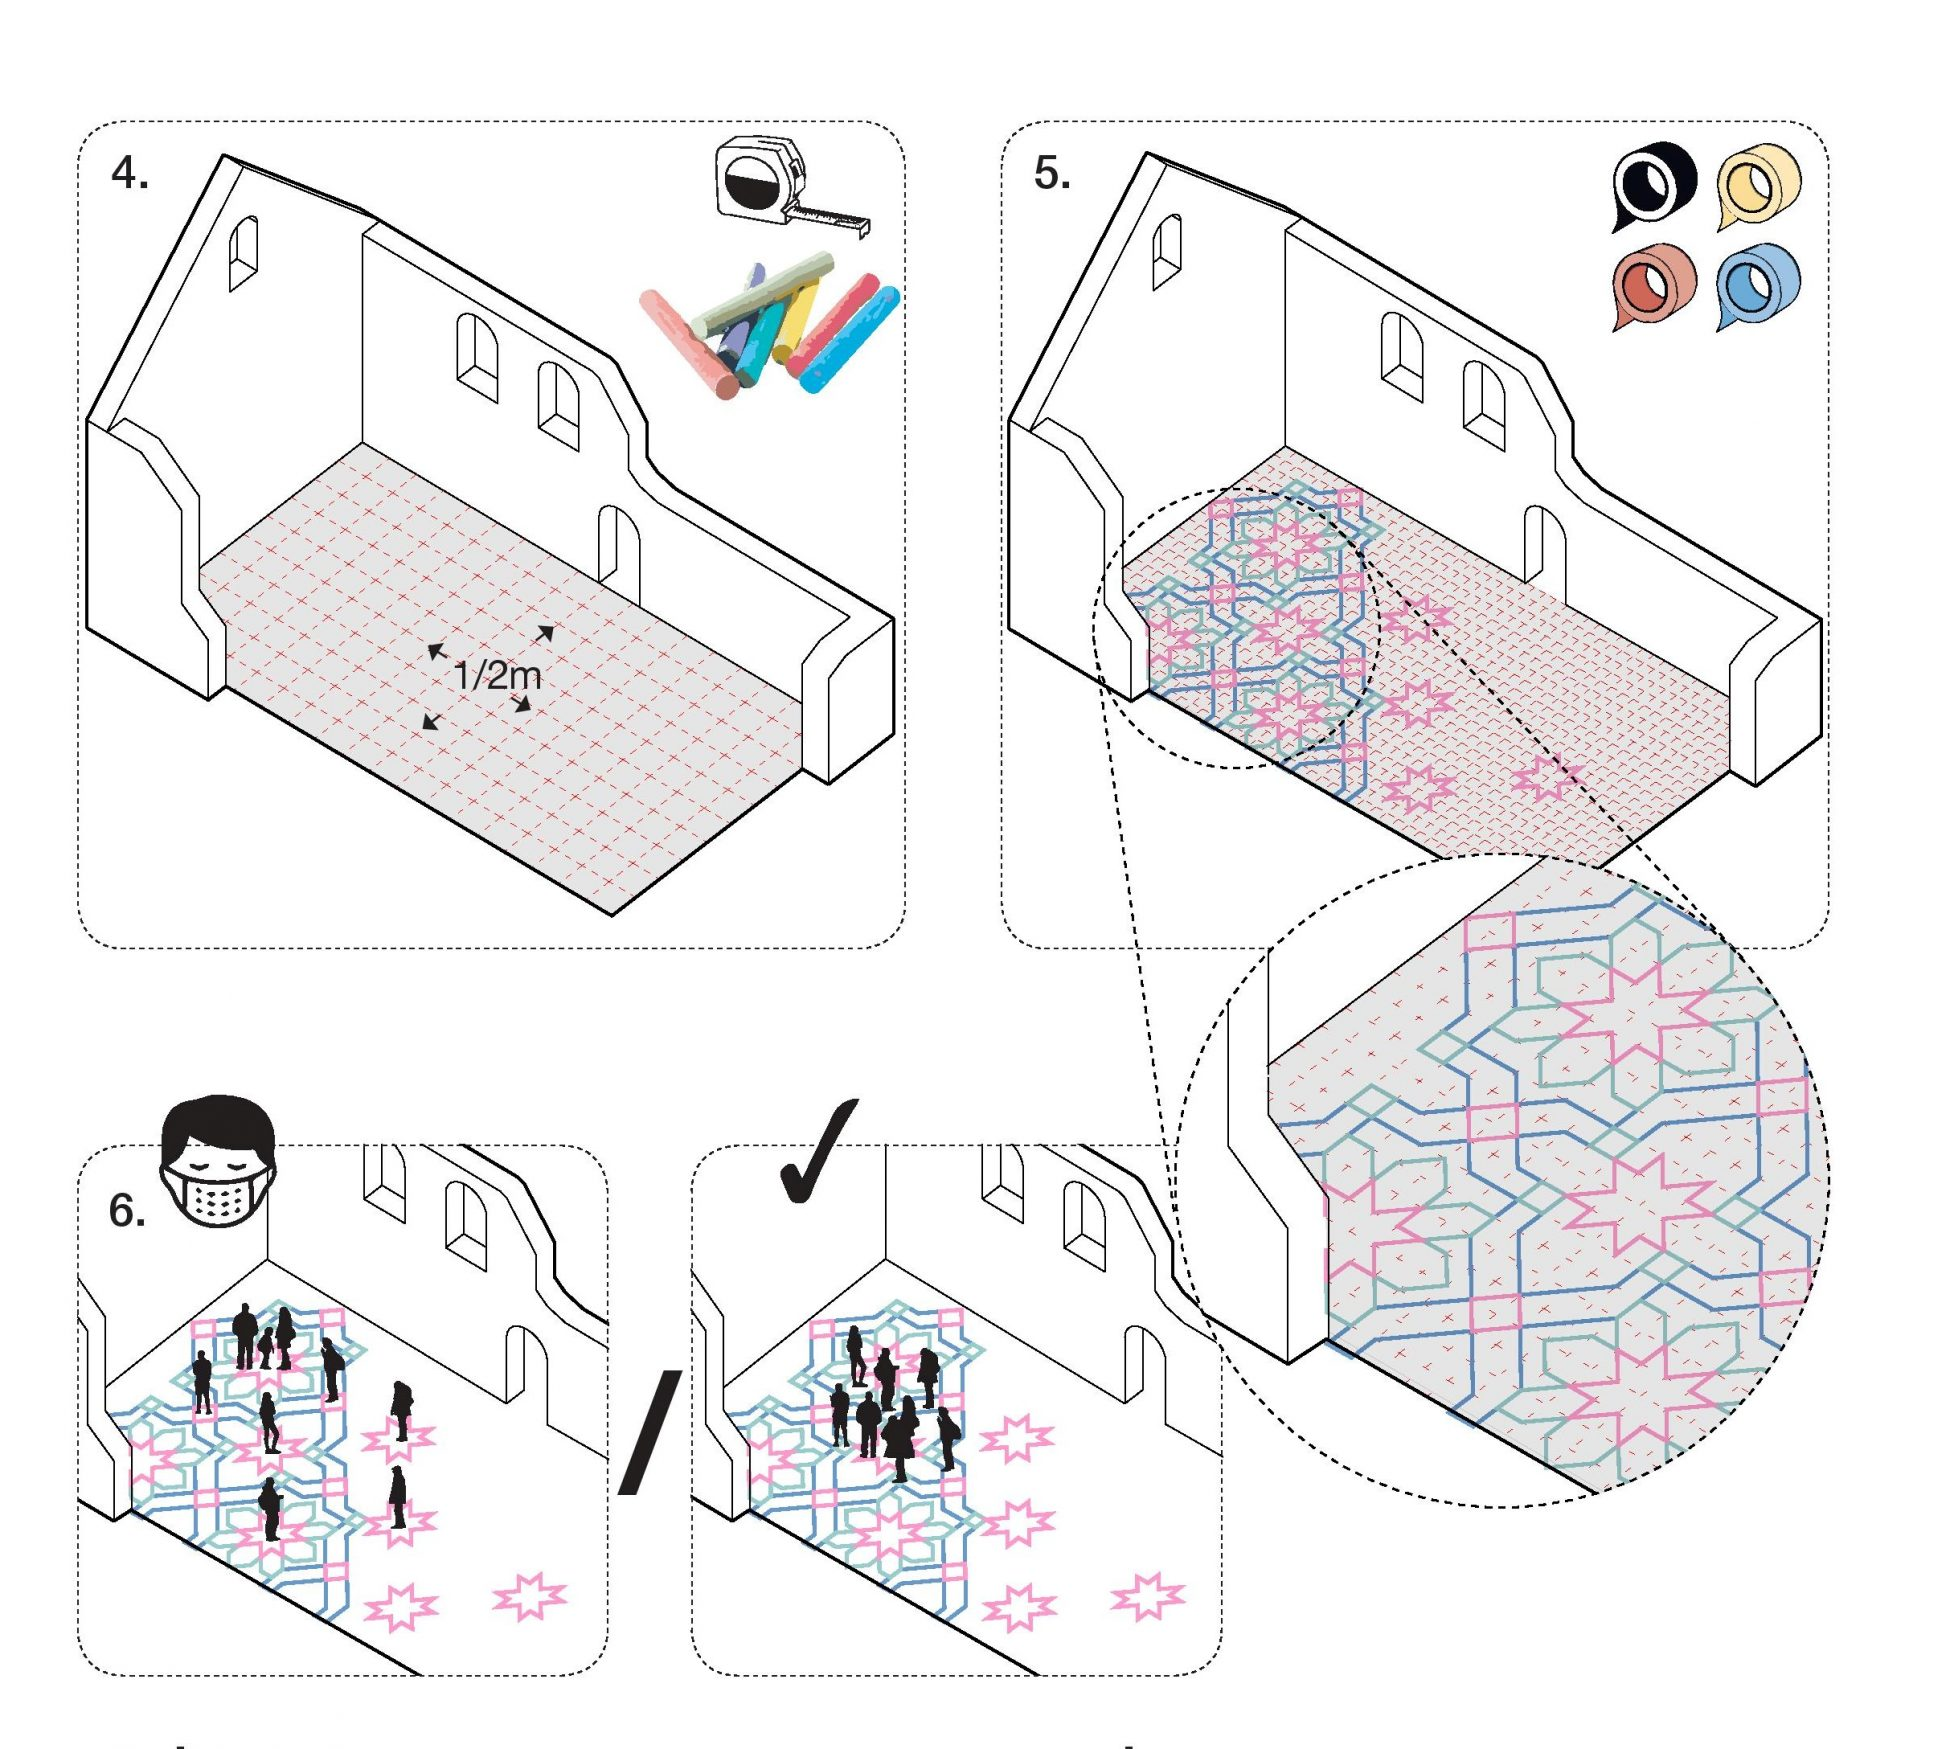 A diagram showing four isometric line drawings of a building with the front walls cut away to show the inside. The first indicates to draw a 50x50cm grid on the floor. The second shows to use the grid as a guide to draw a repeating geometric pattern. The third shows people gathering in the space and an icon of a person's head wearing a face mask. The fourth shows the people congregating together on the patterned floor with an icon of a check mark.